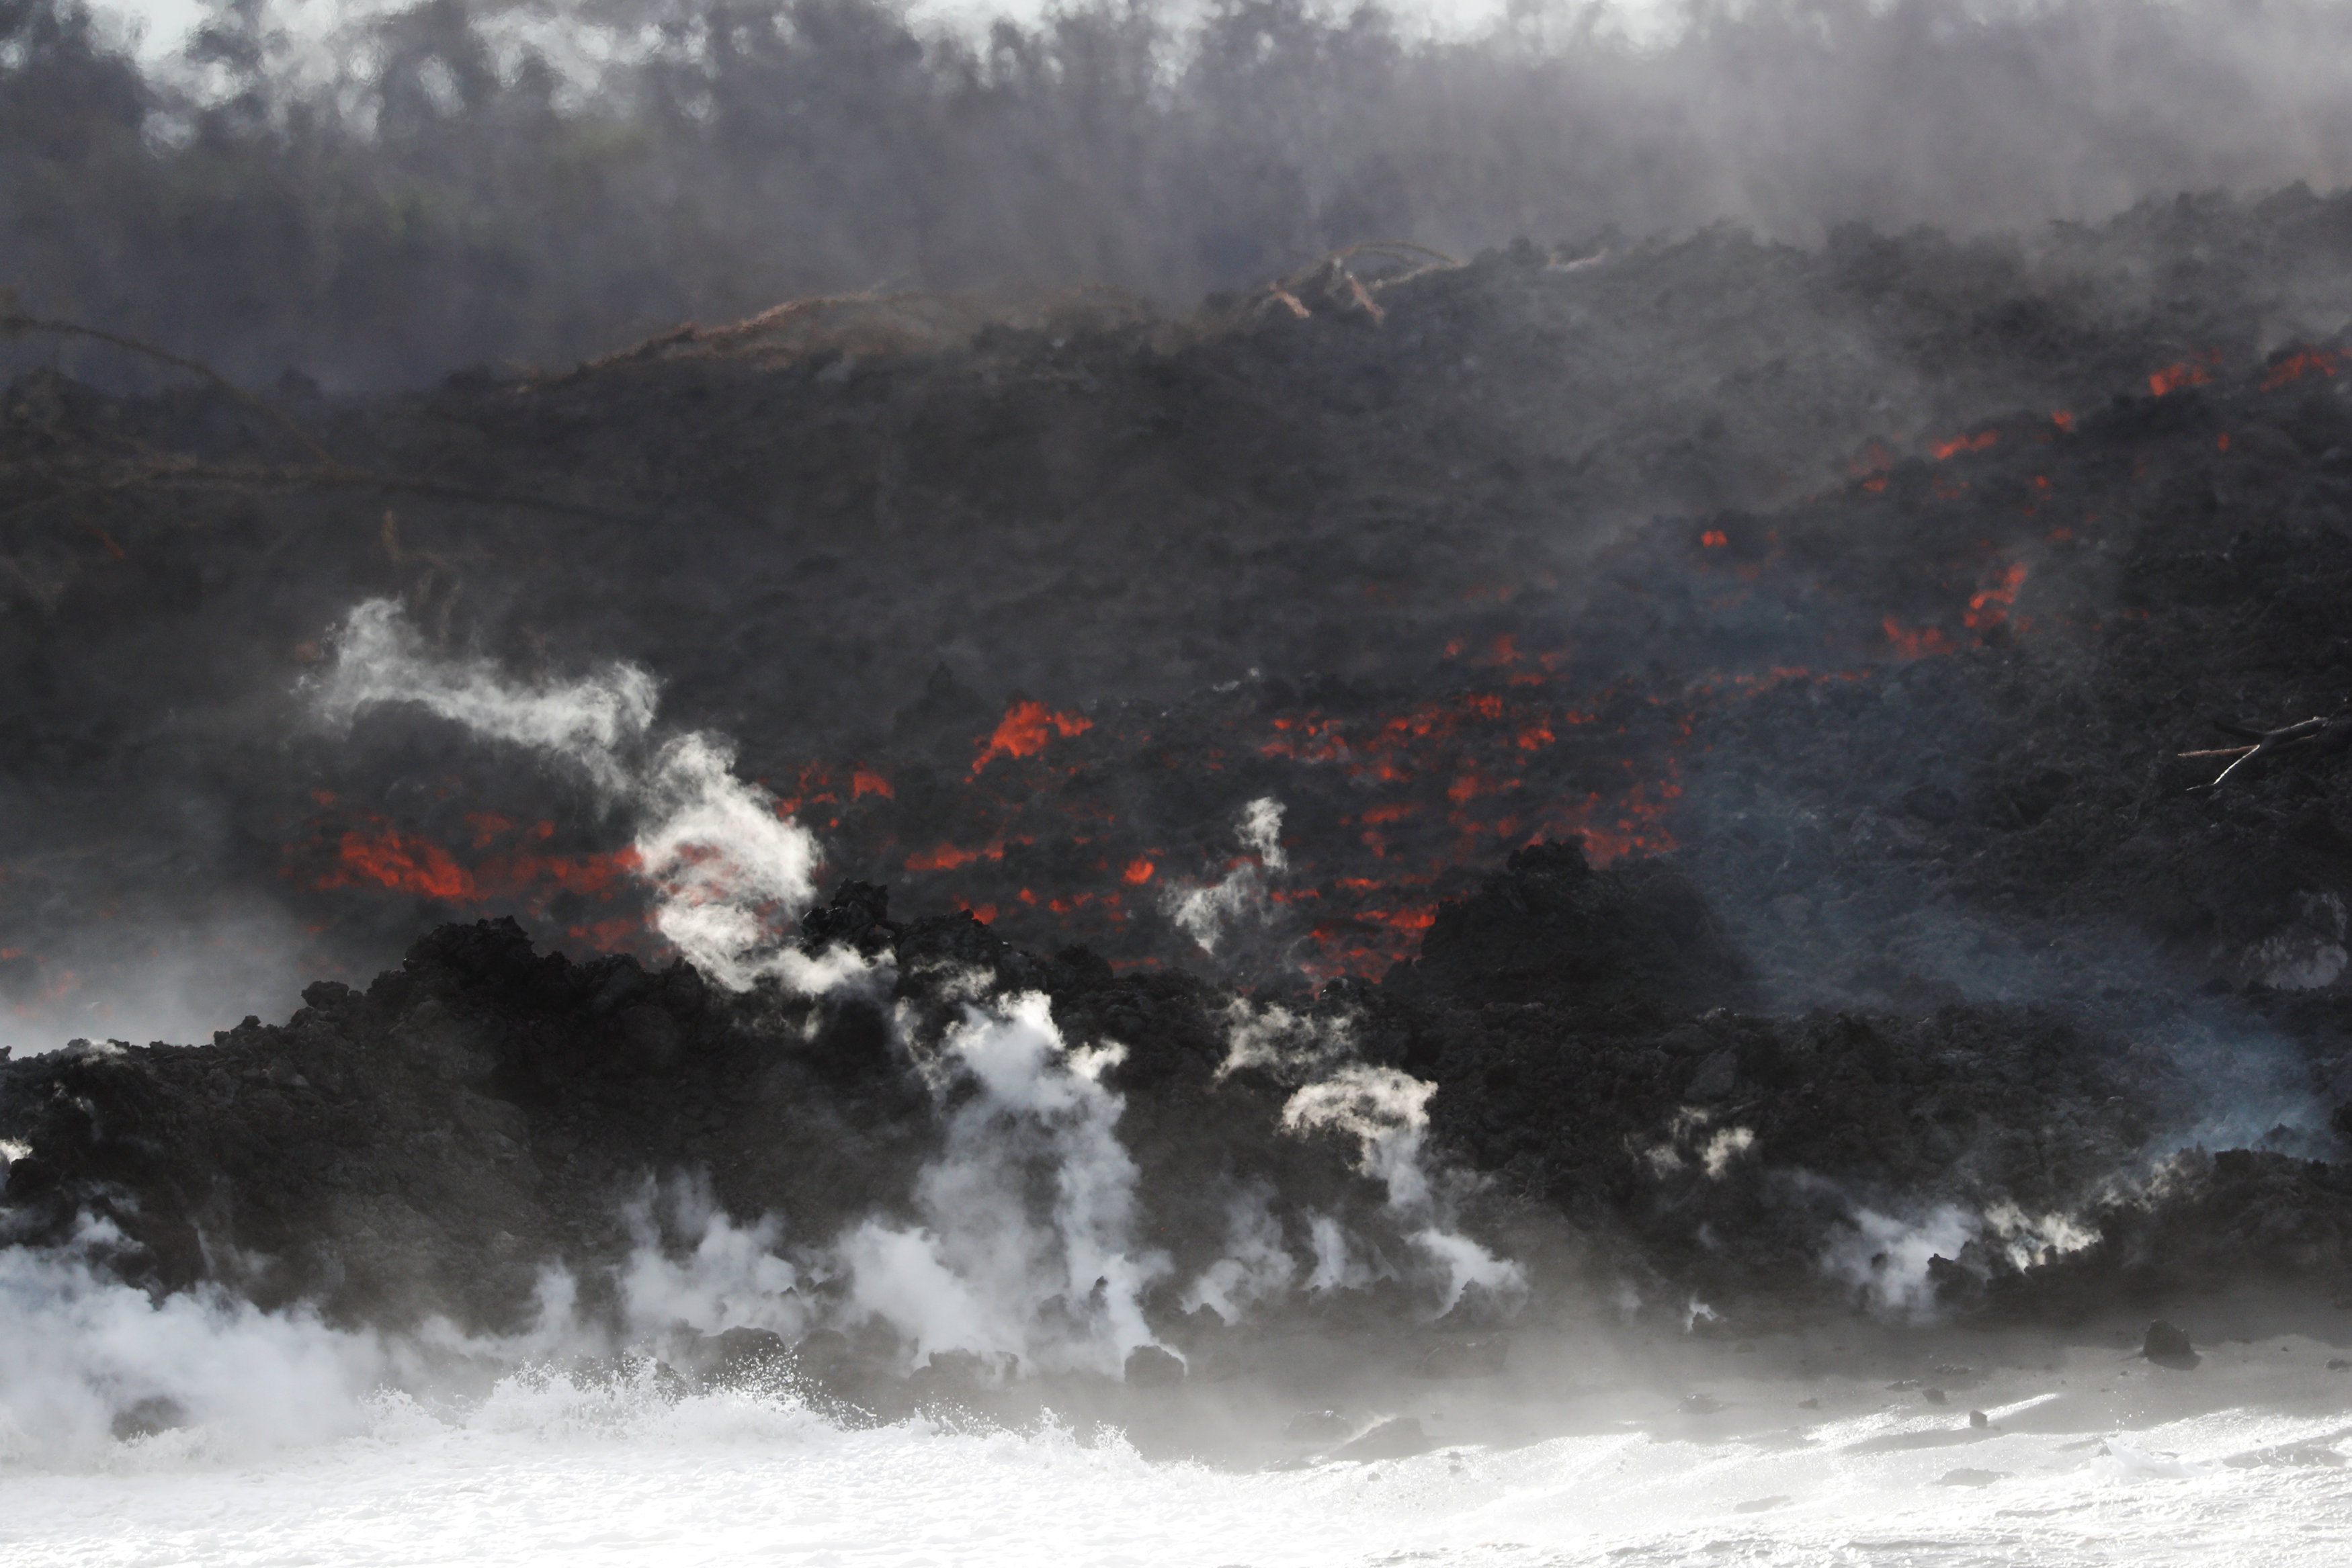 After crossing Highway 137, lava pours into the ocean during the eruption of the Kilauea Volcano near Pahoa, Hawaii, U.S., May 24, 2018. REUTERS/Marco Garcia